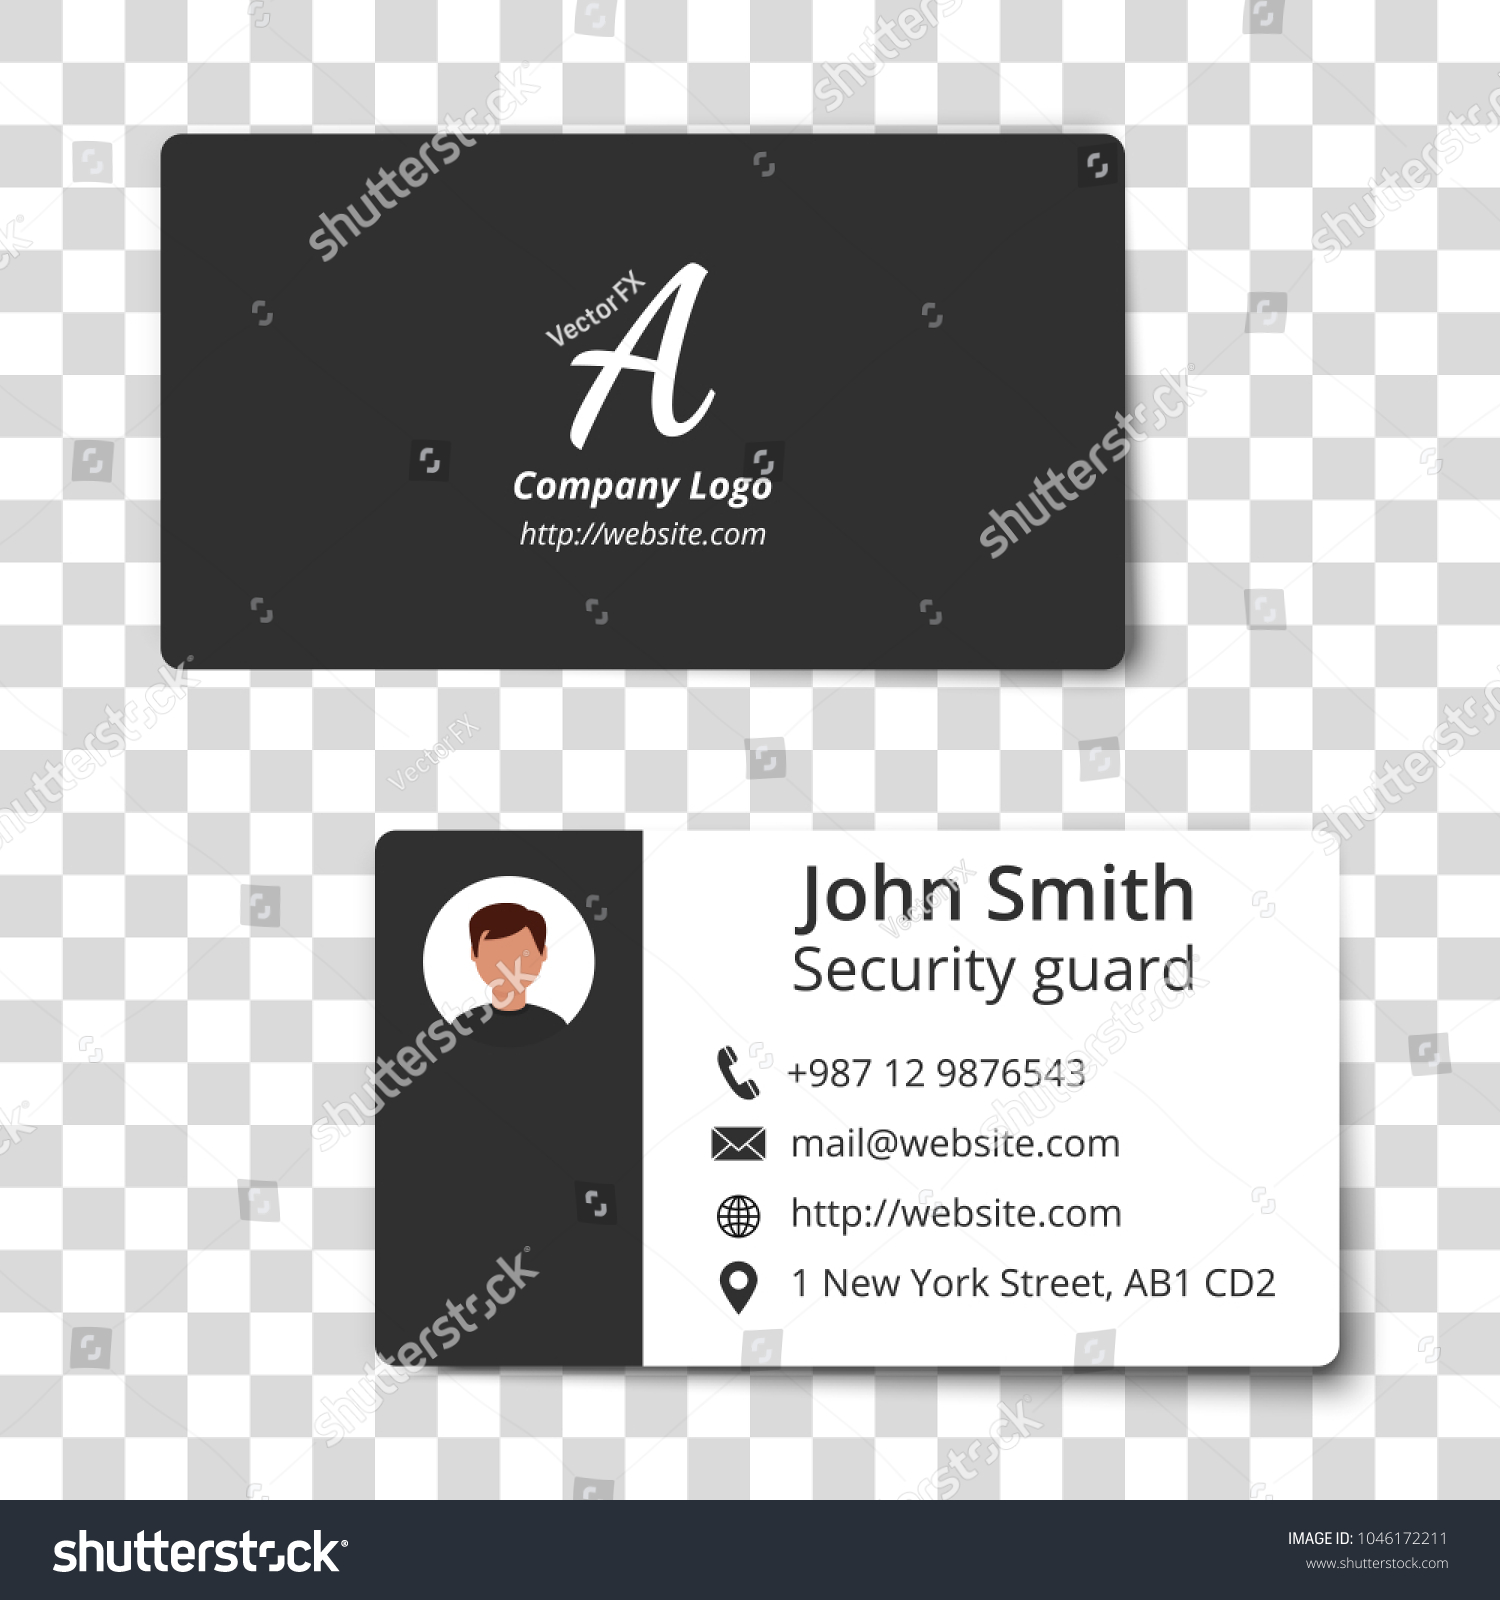 Twosided Business Card Template Vector Illustration Stock Vector ...